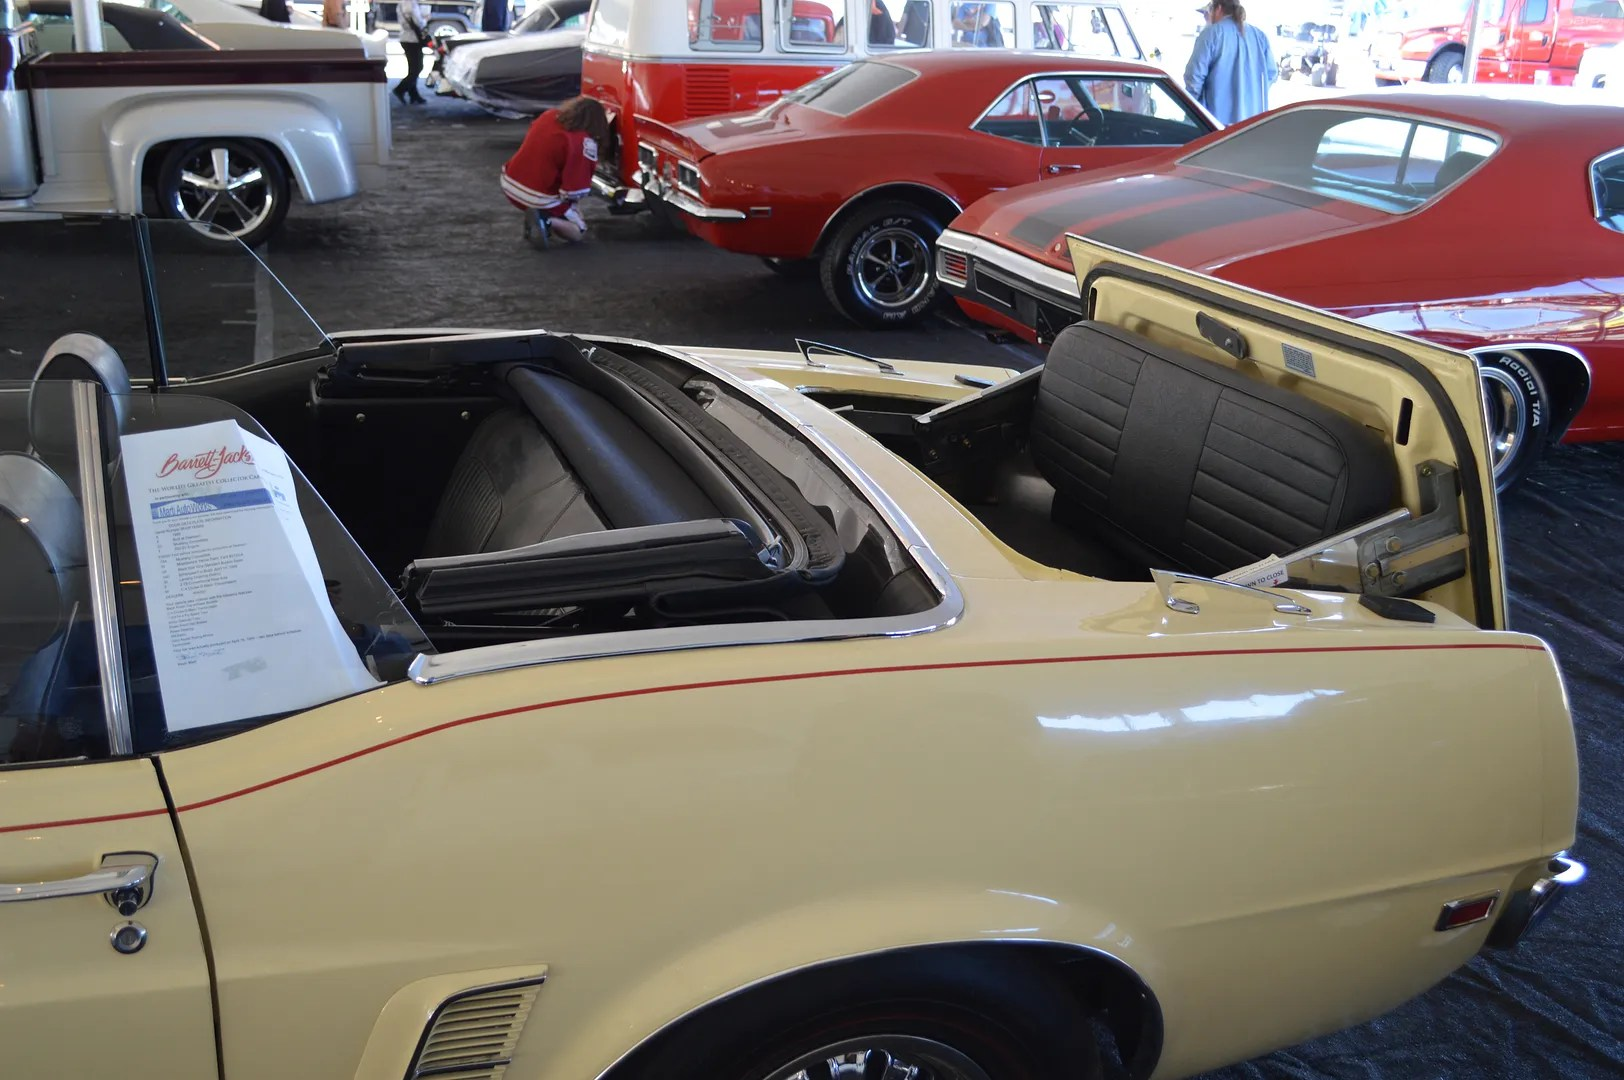 Kit Cars With Rumble Seat